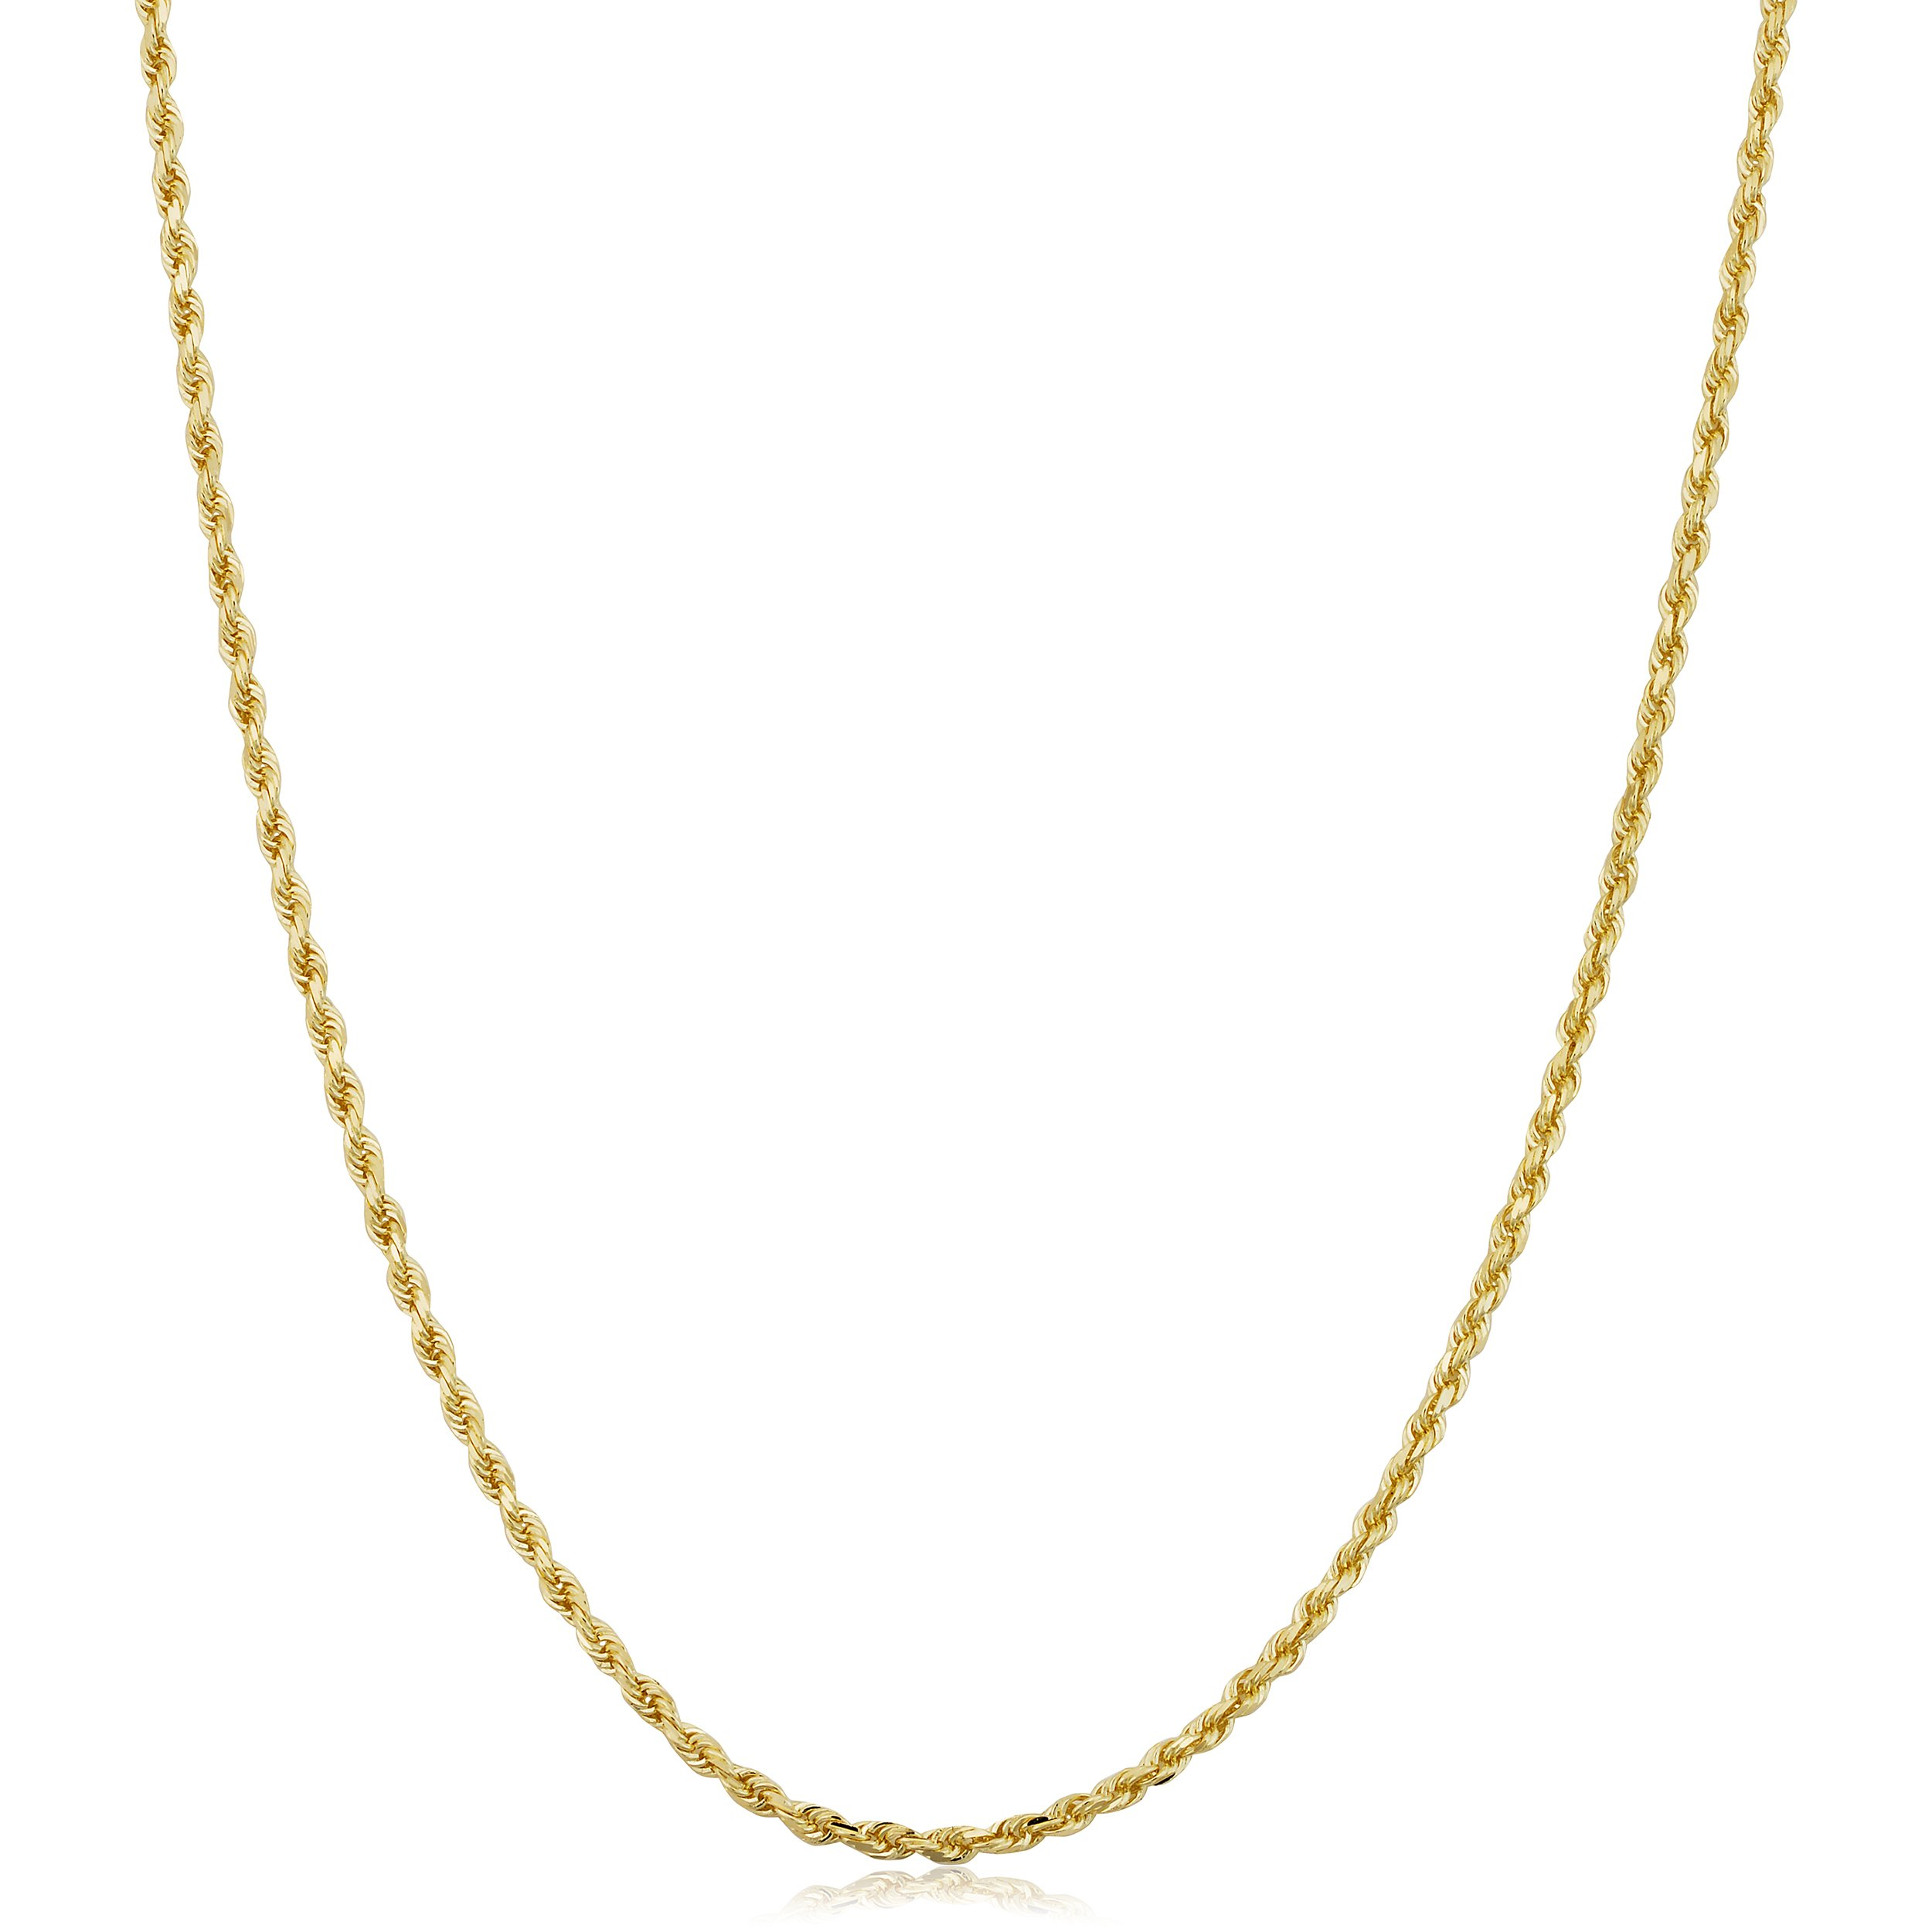 10k Yellow Gold 1.5mm Rope Chain Necklace (20 inch)